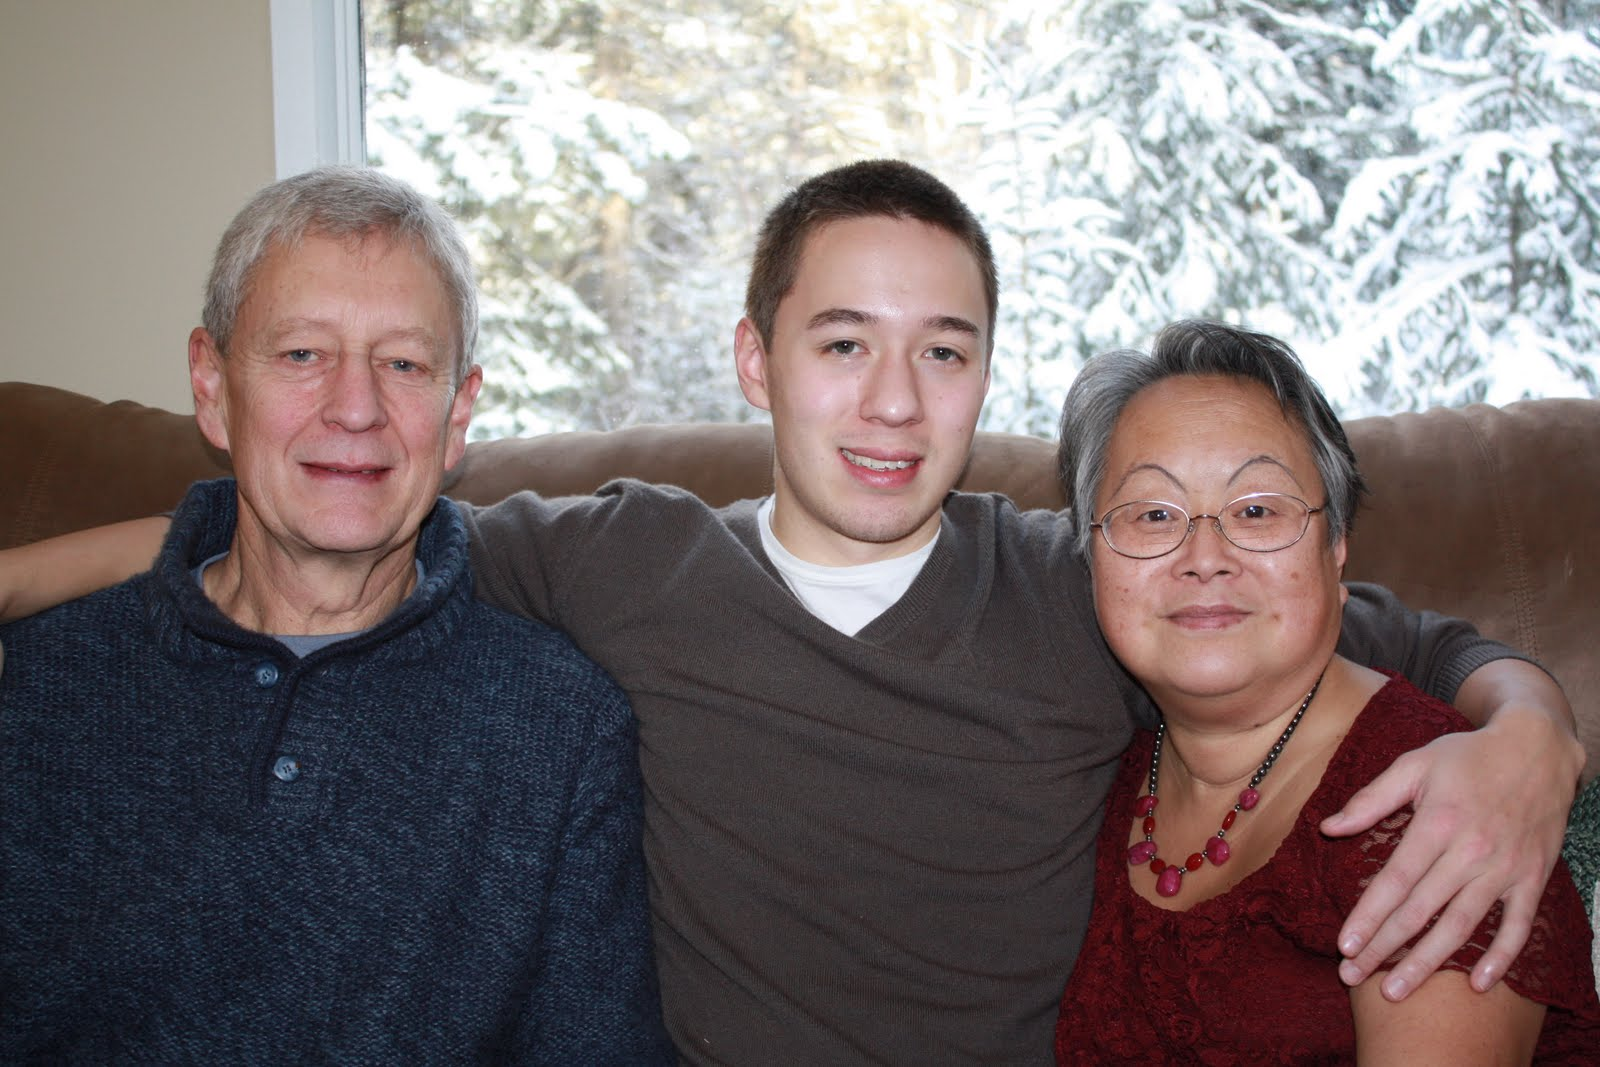 Poor kid. Oh yah, my Mom is the Chinese one in our family. My Dad is pure  white. Viking lineage he claims.